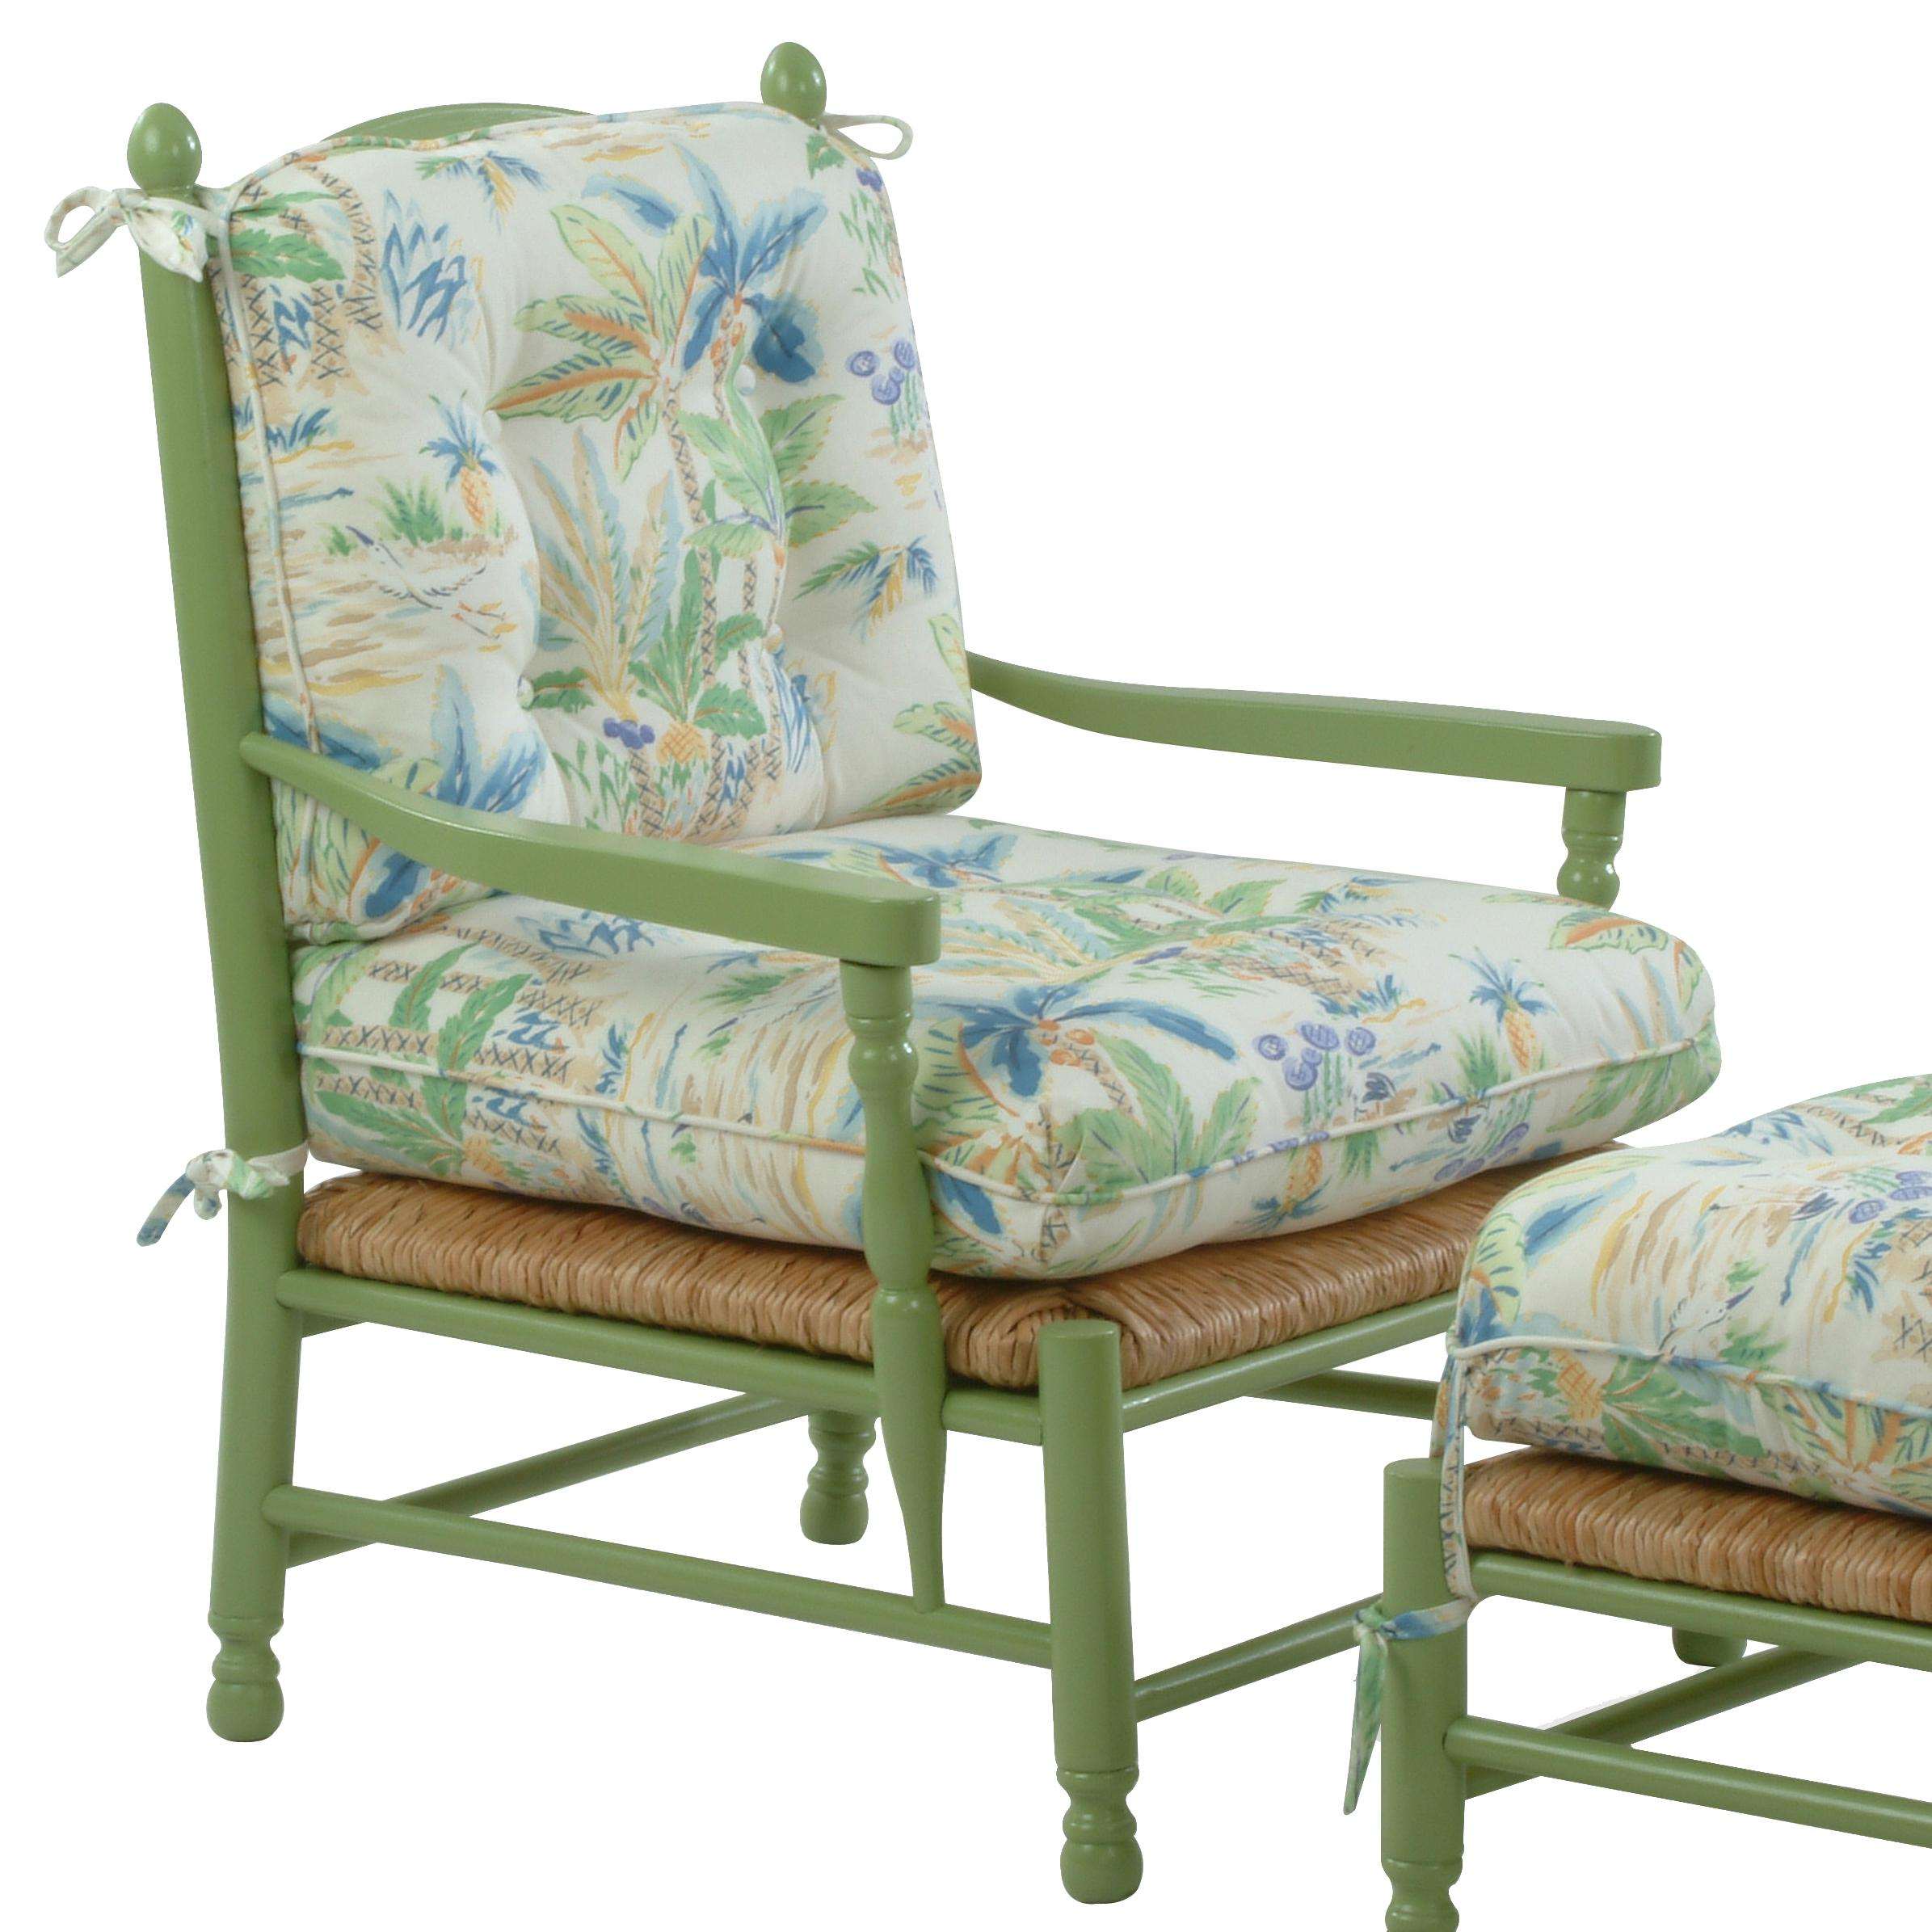 Coastal Chairs Braxton Culler Accent Chairs 1204 001 Coastal Style